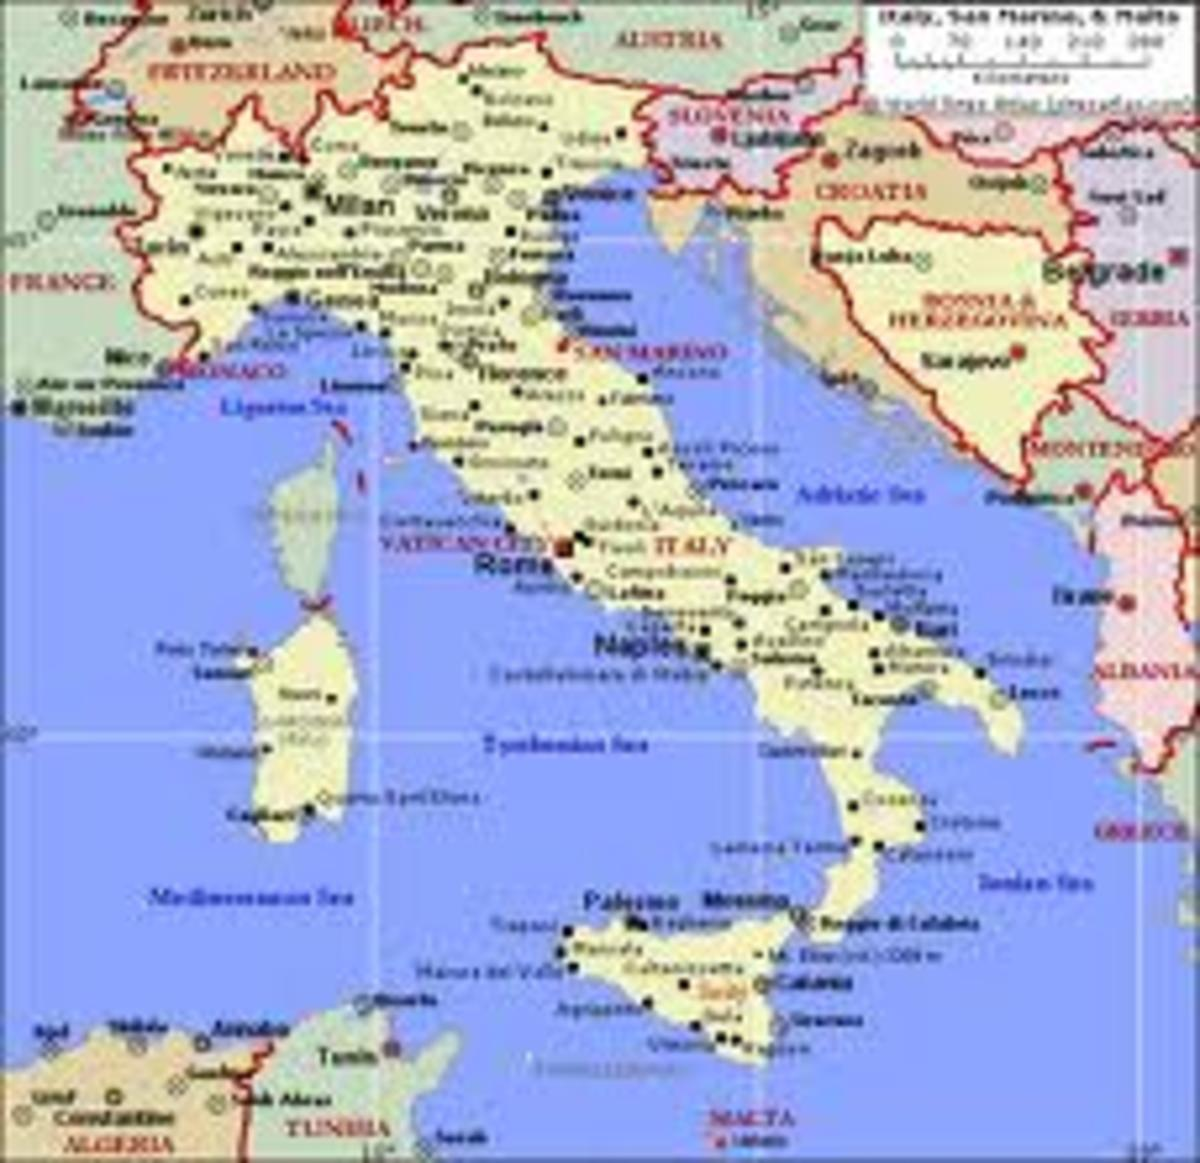 Map of Italy, I was born in southern Italy and embarked at Naples to go to Australia.